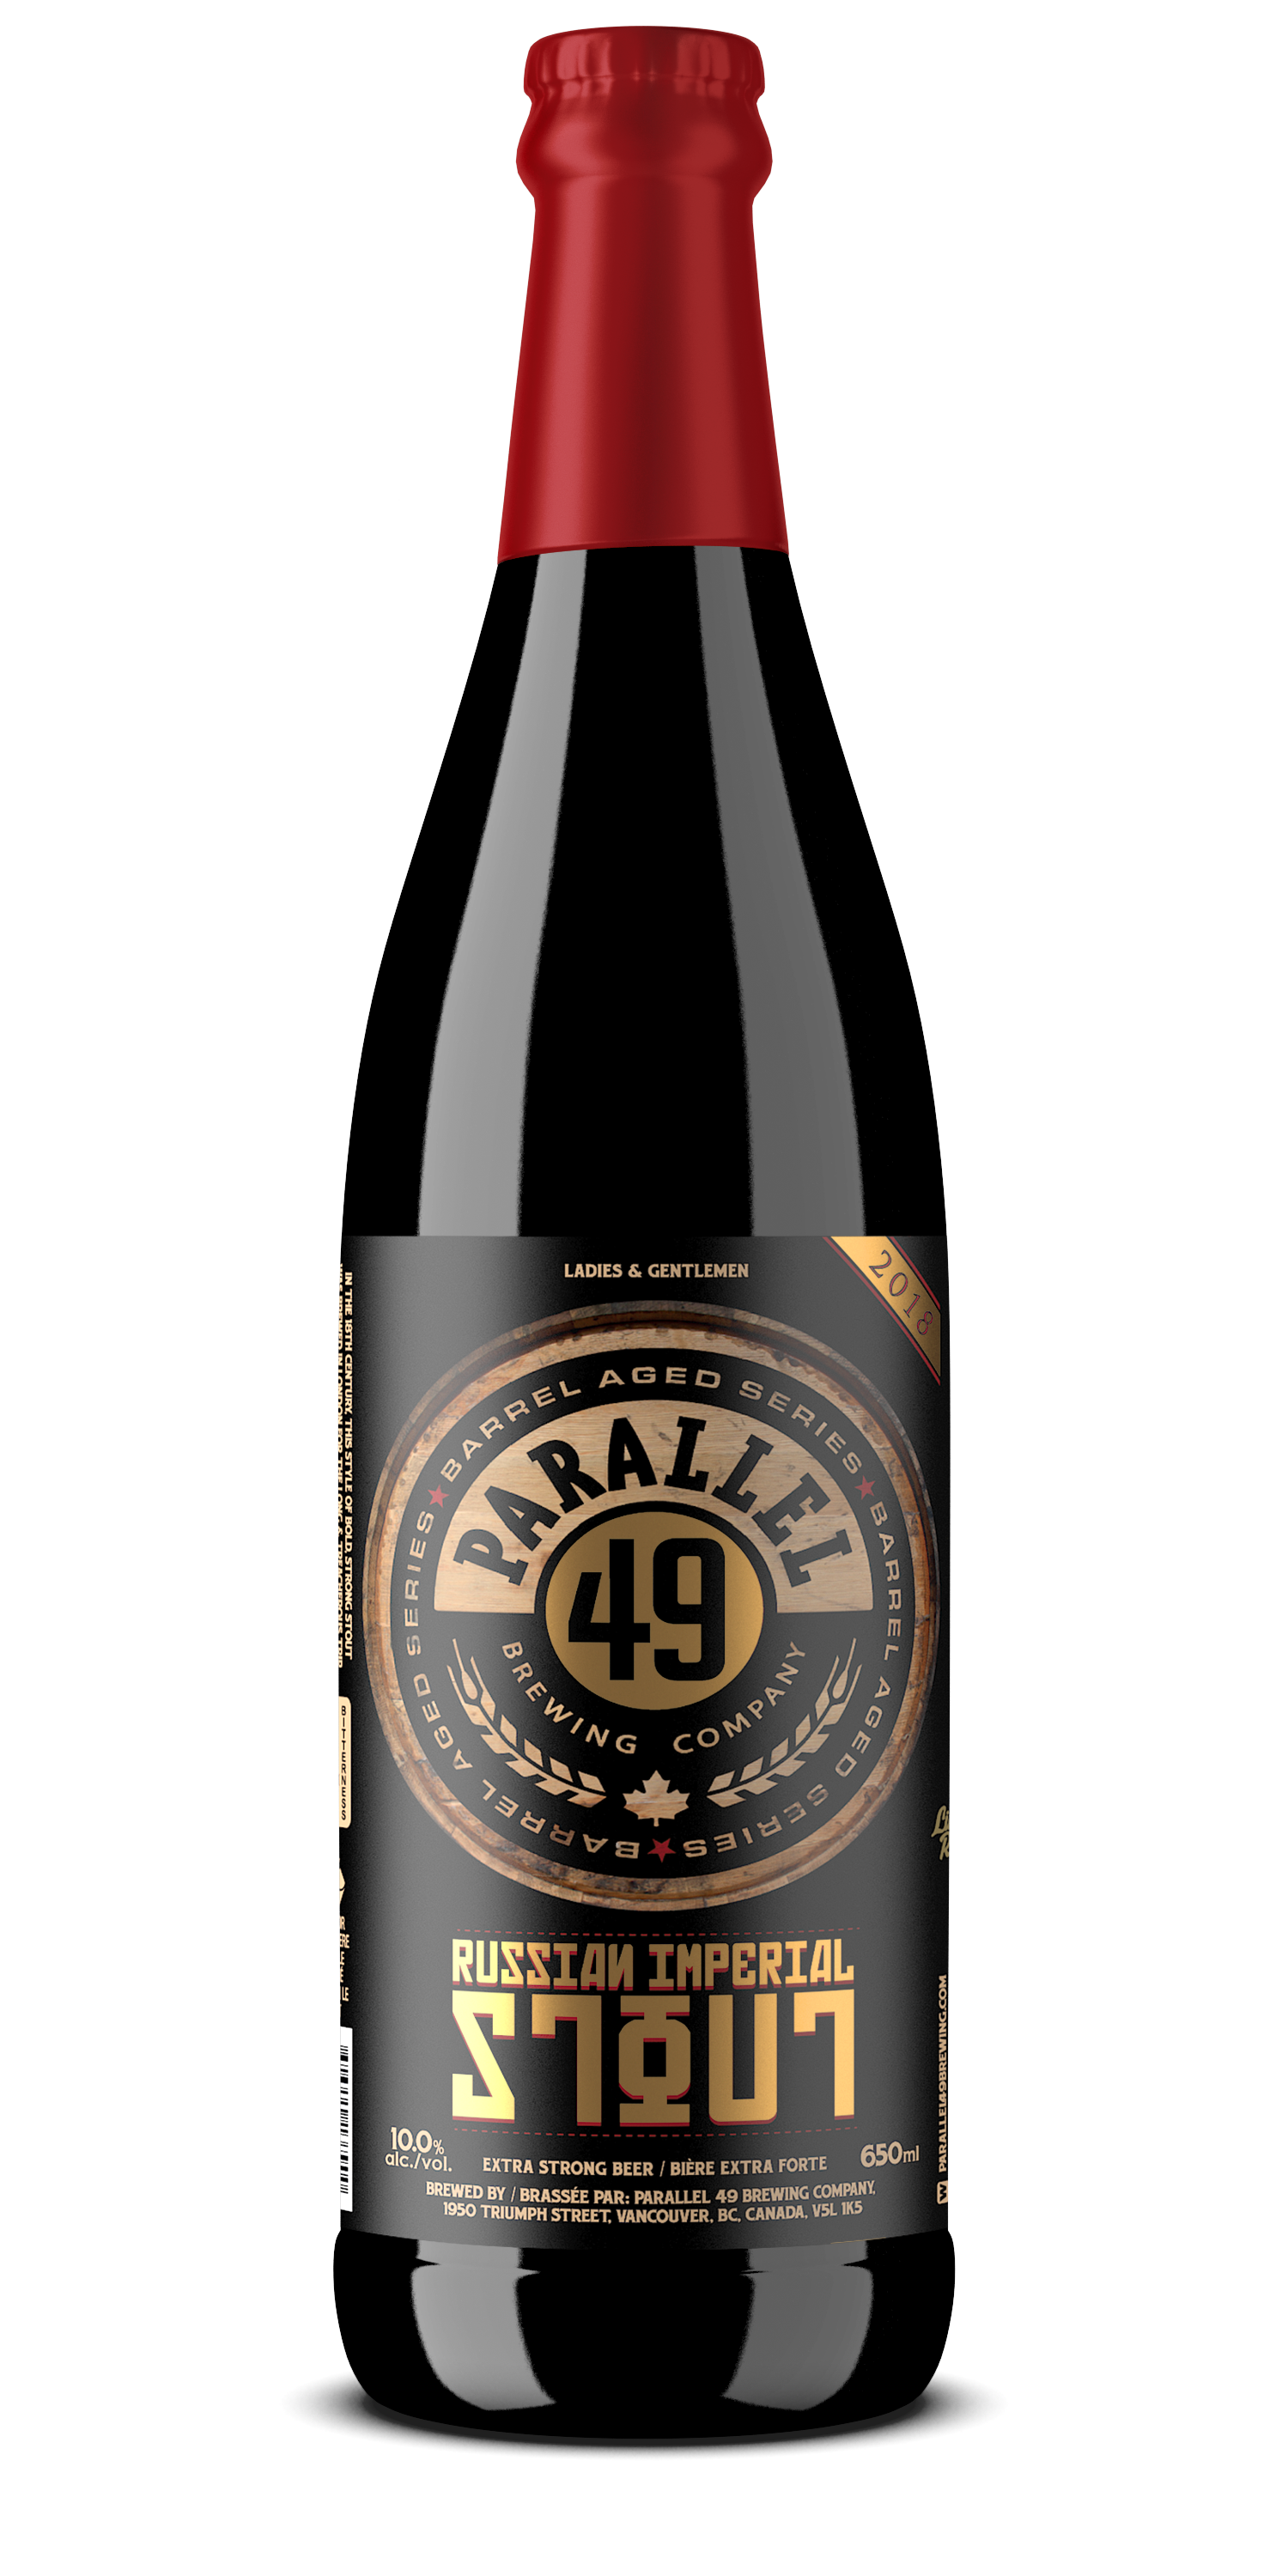 Outshinery parallel49 russianimperialstout2018